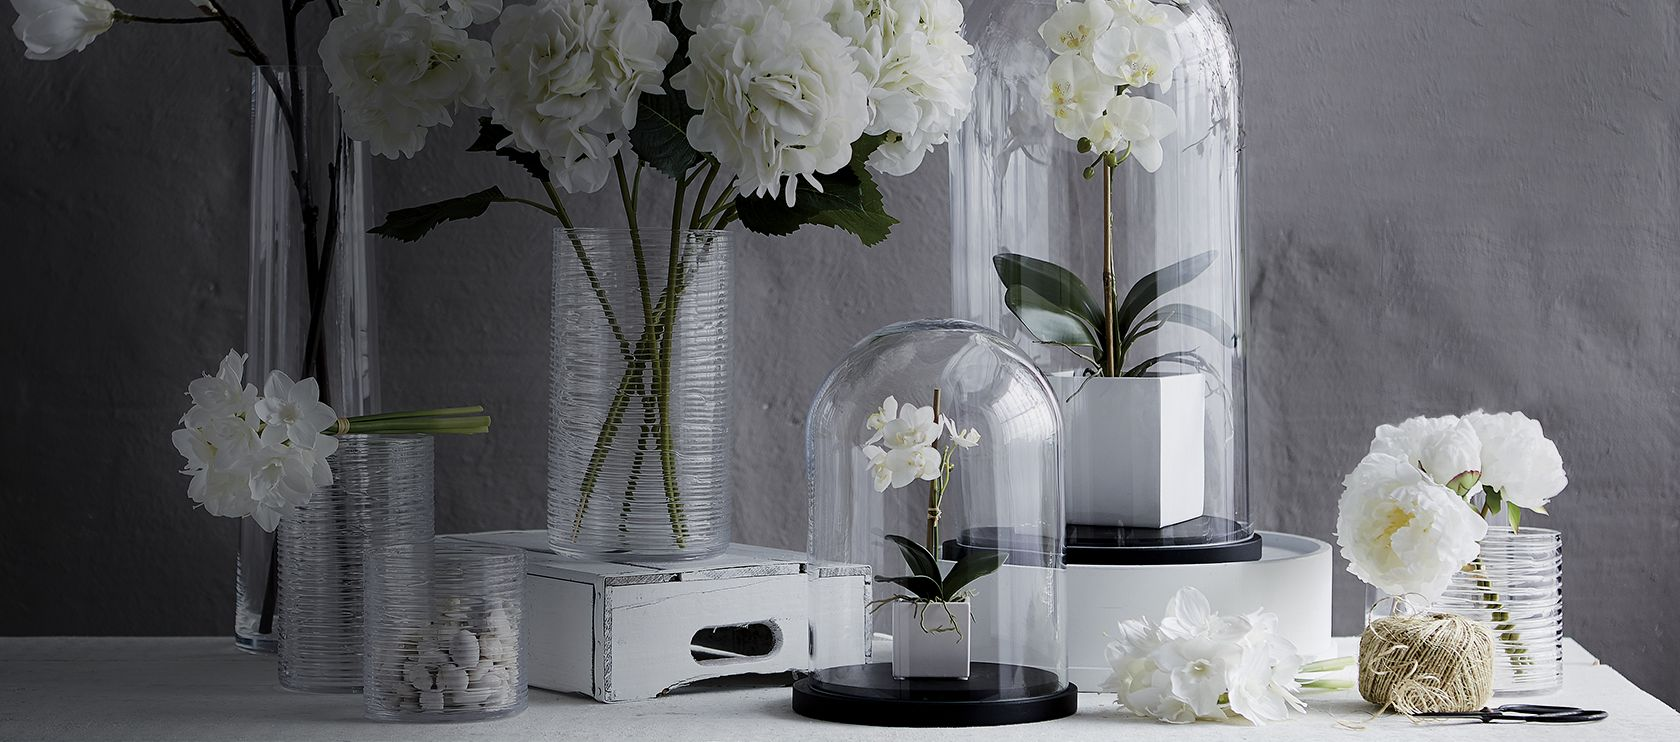 Home Accessories Breathe New Life Into Your Space With An Abundance Of Fresh White Botanicals And Greenery